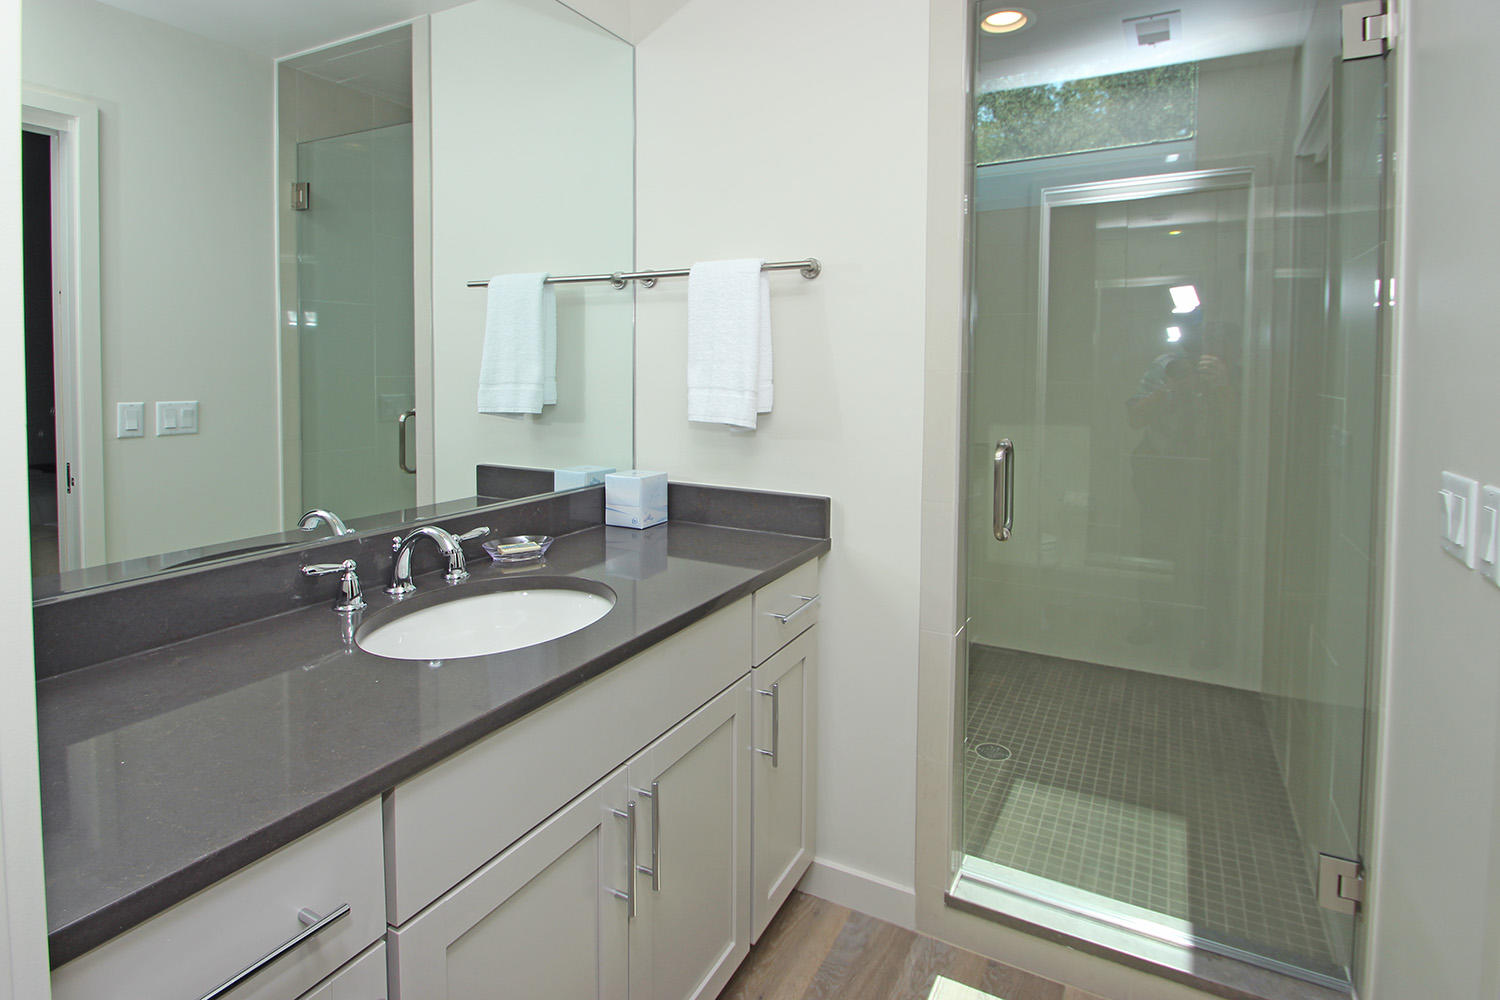 Bath for dormitory room - mid-level